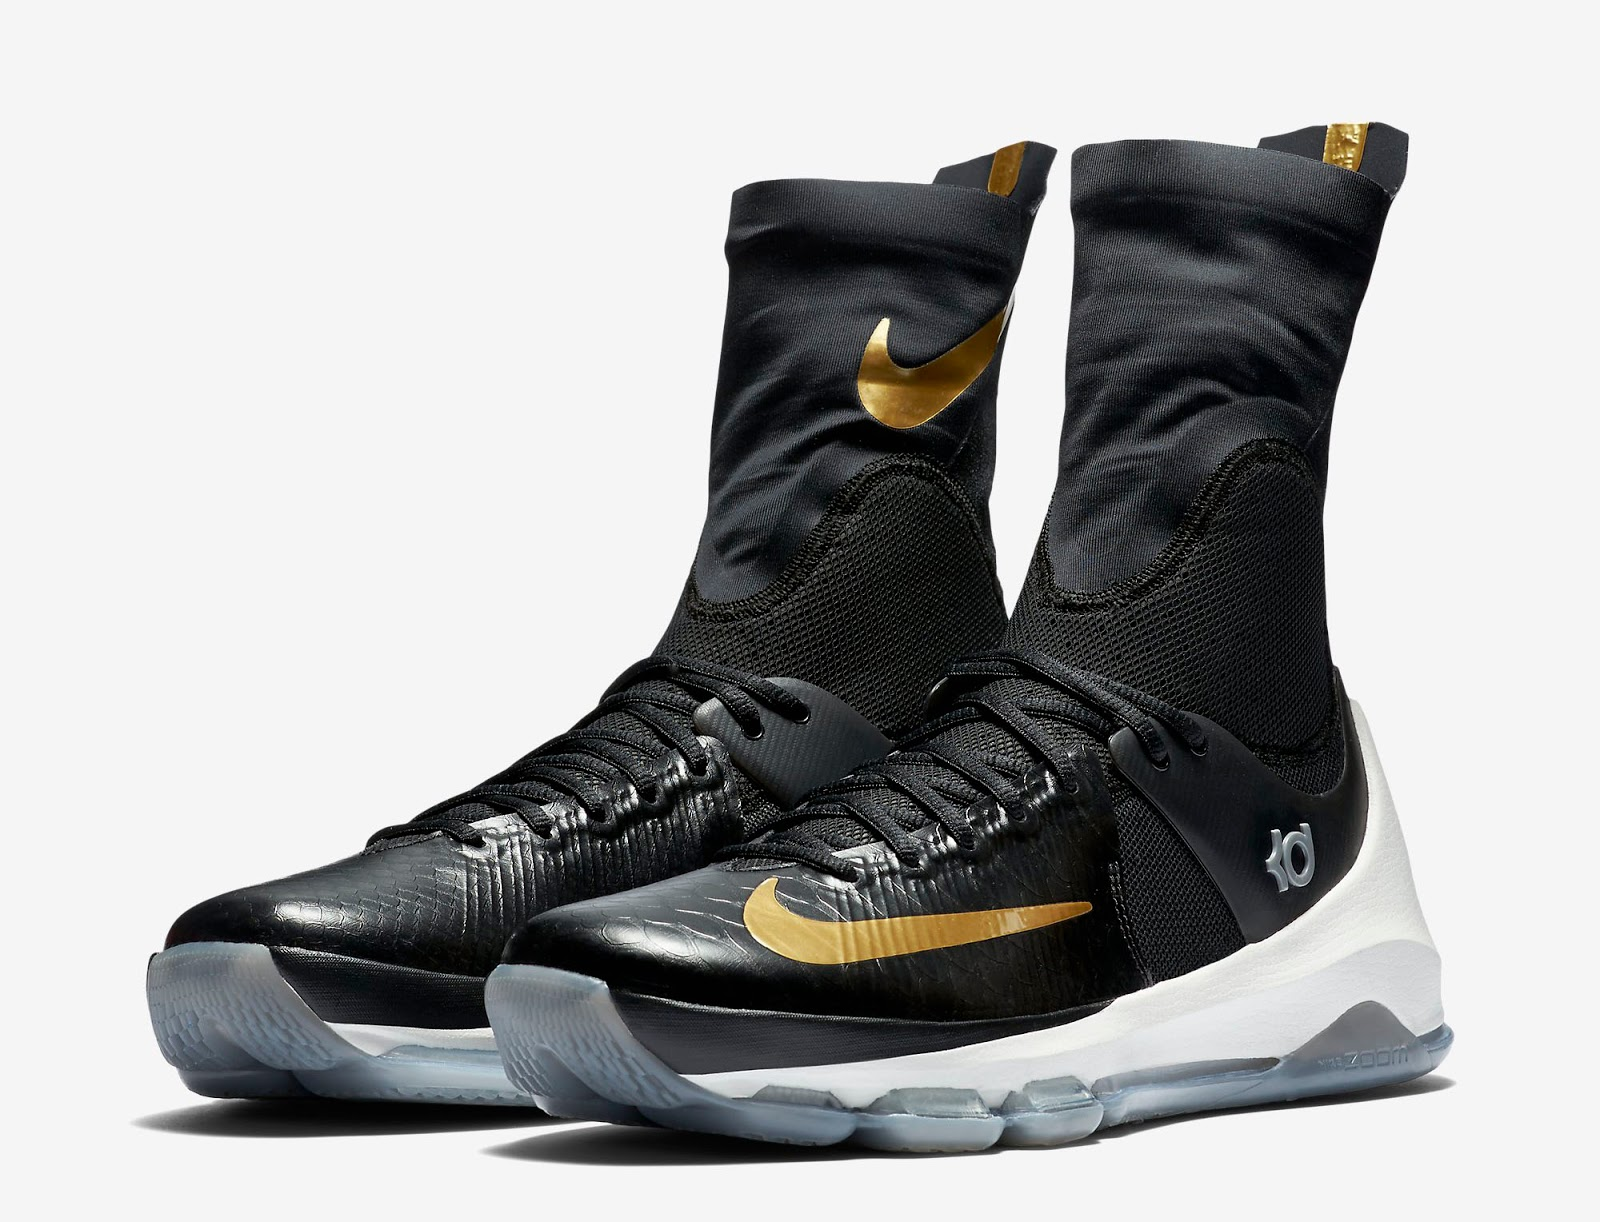 quality design 1471e 07988 Just in time for Kevin Durant s run for the NBA Finals, this Nike KD 8 Elite  comes in a black, metallic gold and sail colorway. Featuring a black-based  ...